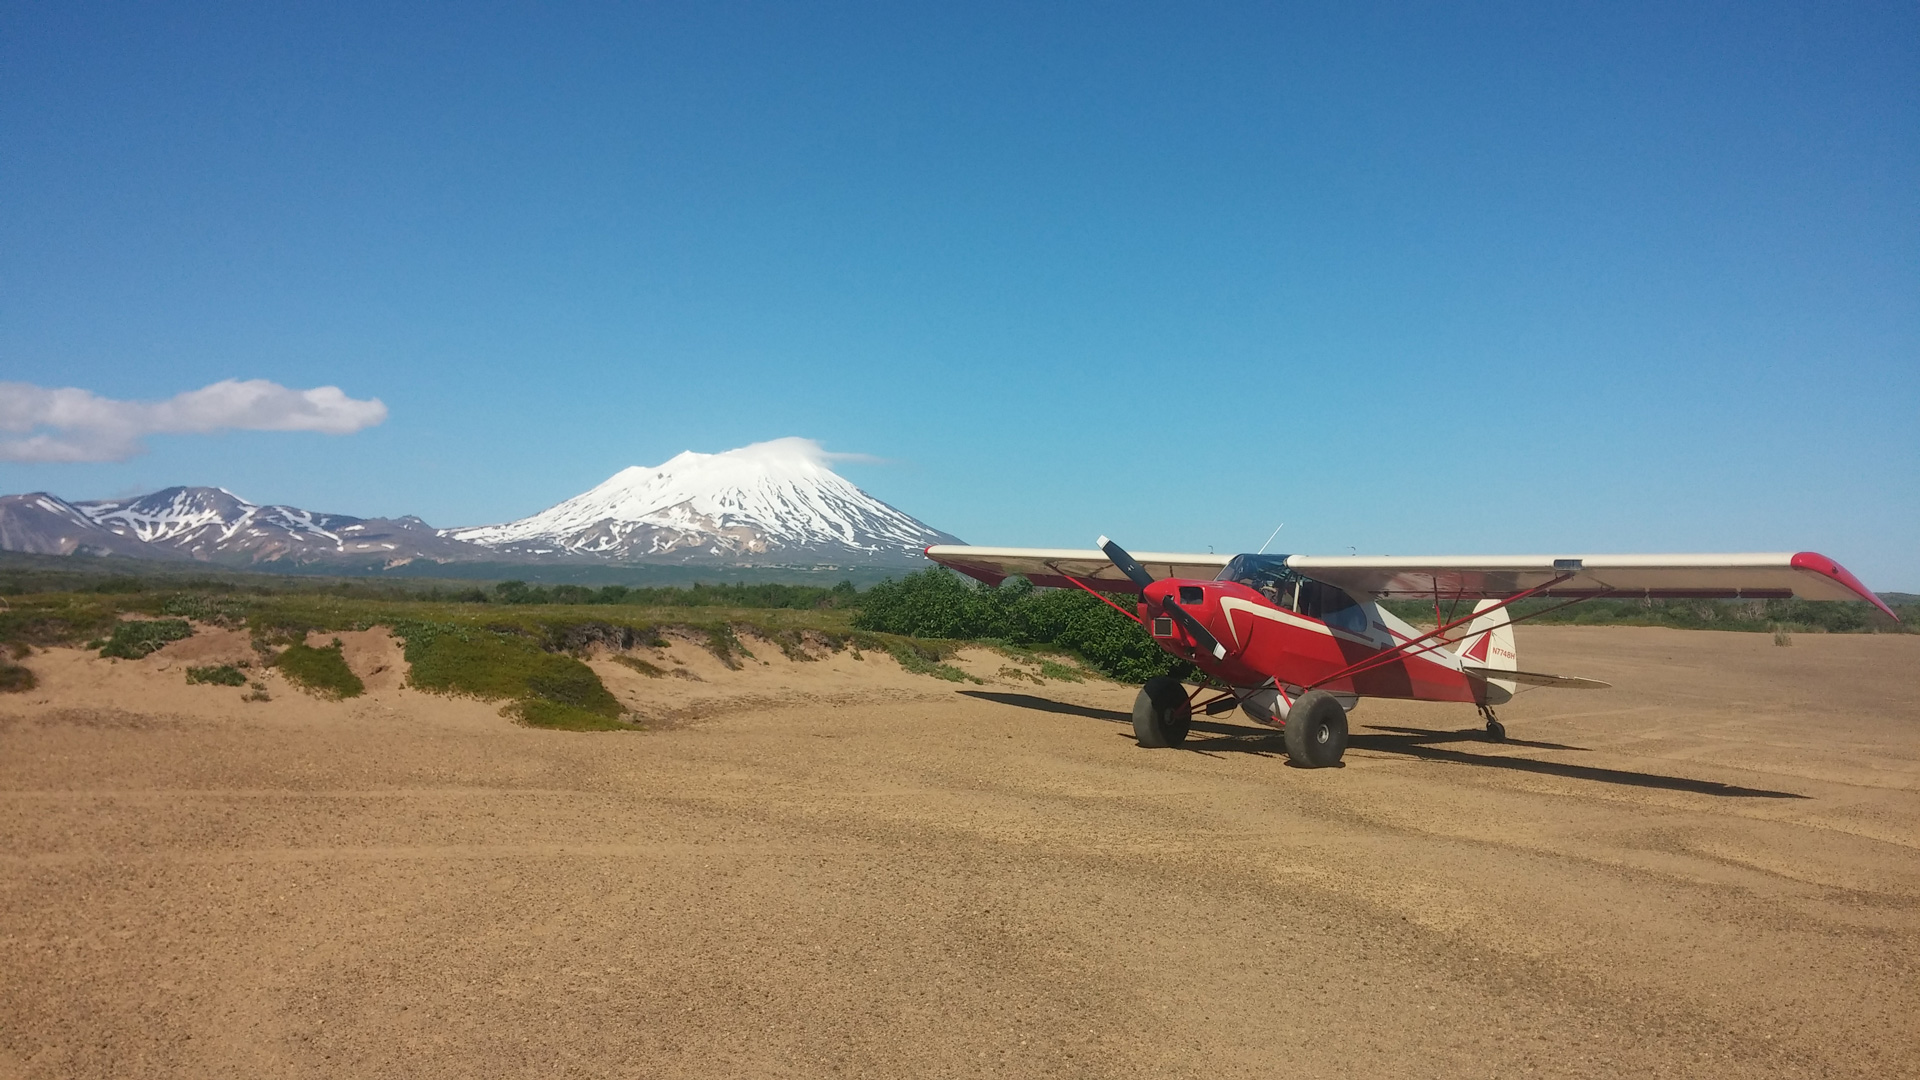 Photo of Doug Turnbull's PA12 Super Cruiser plane in Alaska